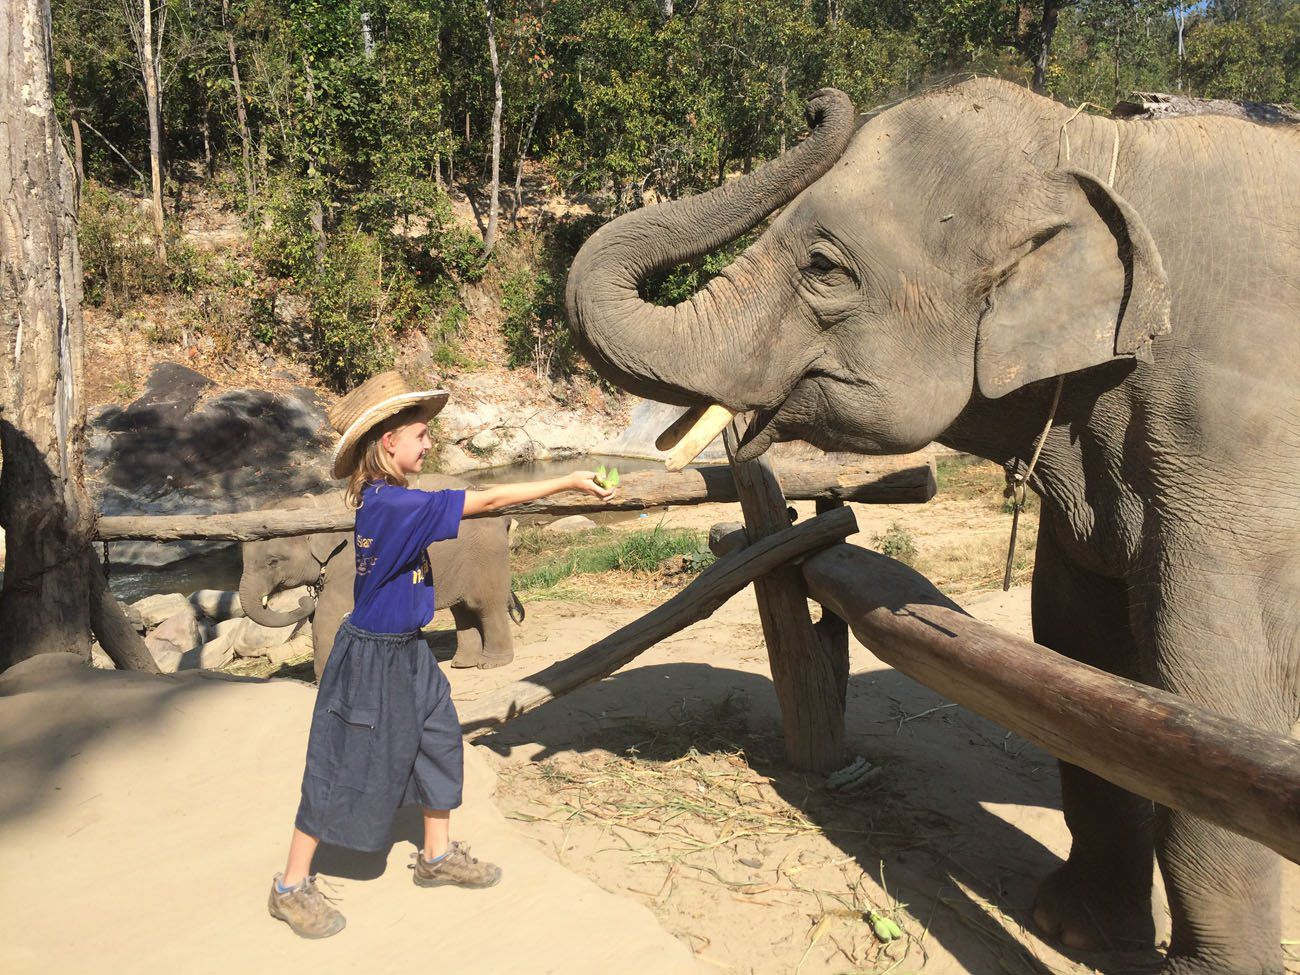 Kara Rivenbark with elephant